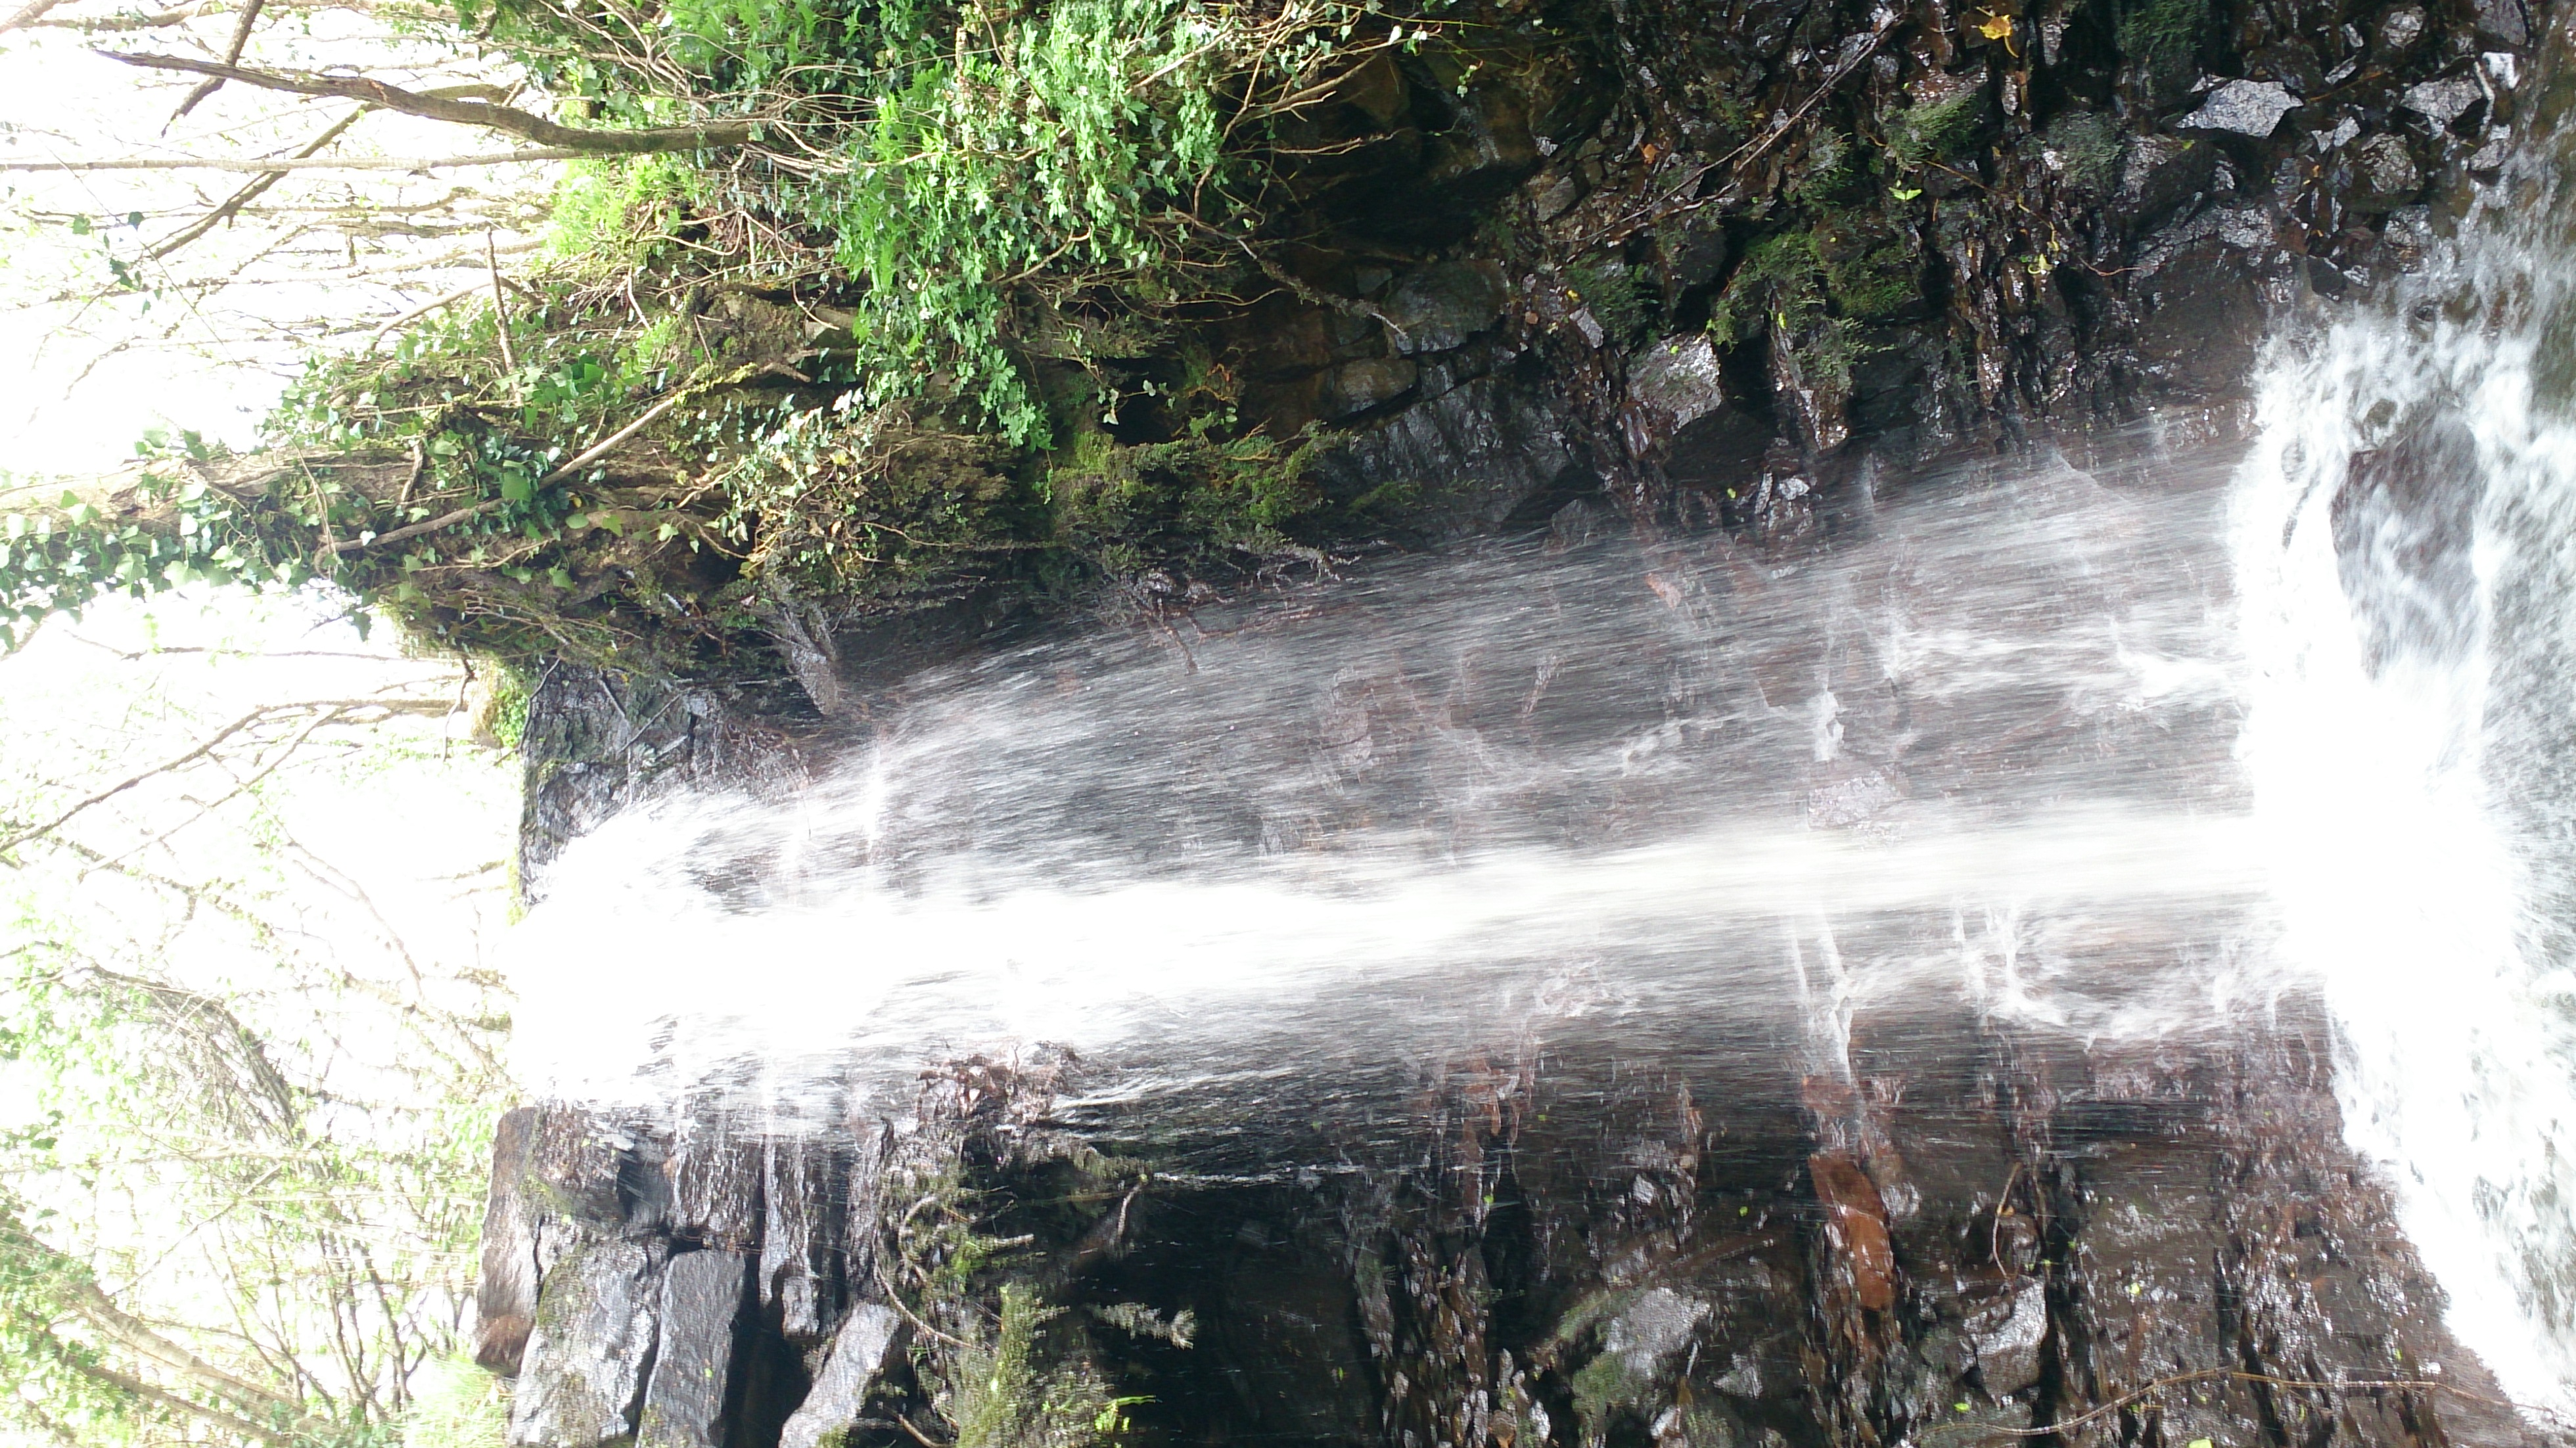 Lots of rain from previous days made this an exciting waterfall